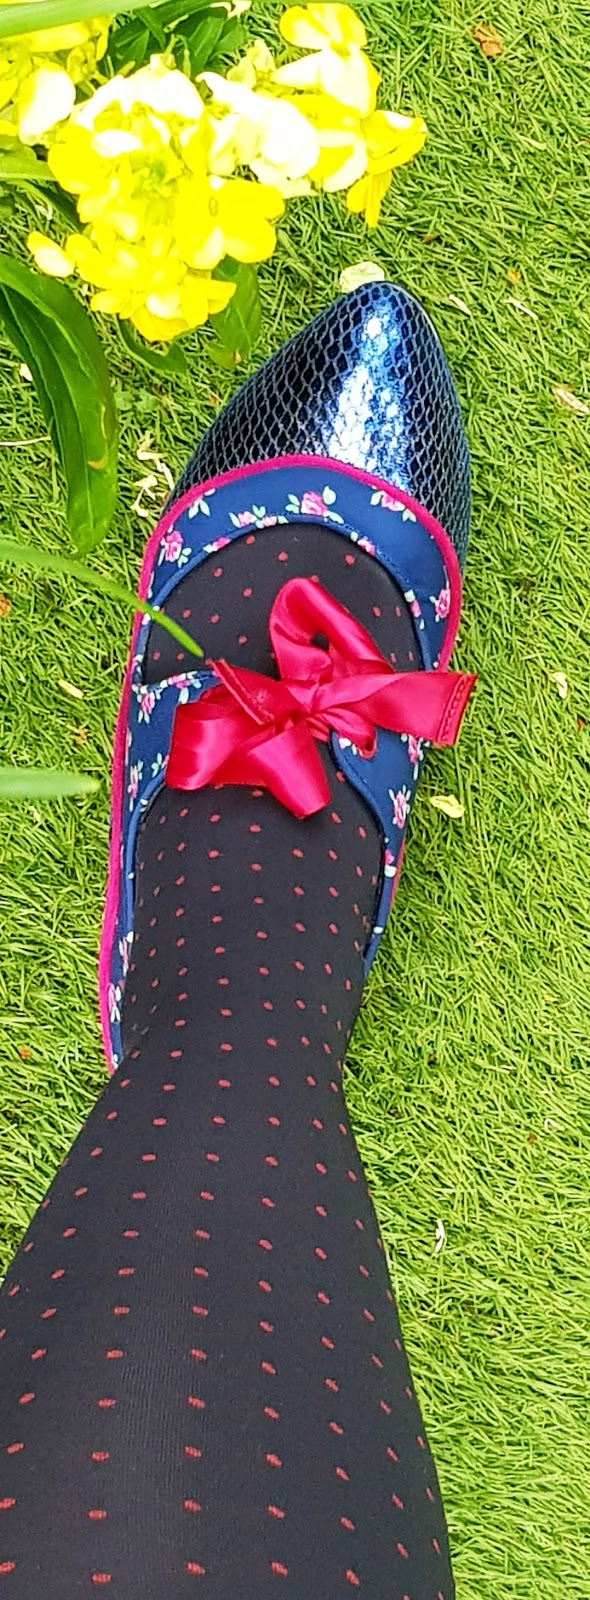 Close up showing funky blue and pink patterned shoes by Poetic Licence worn with navy and pink spotted tights. From Is This Mutton?